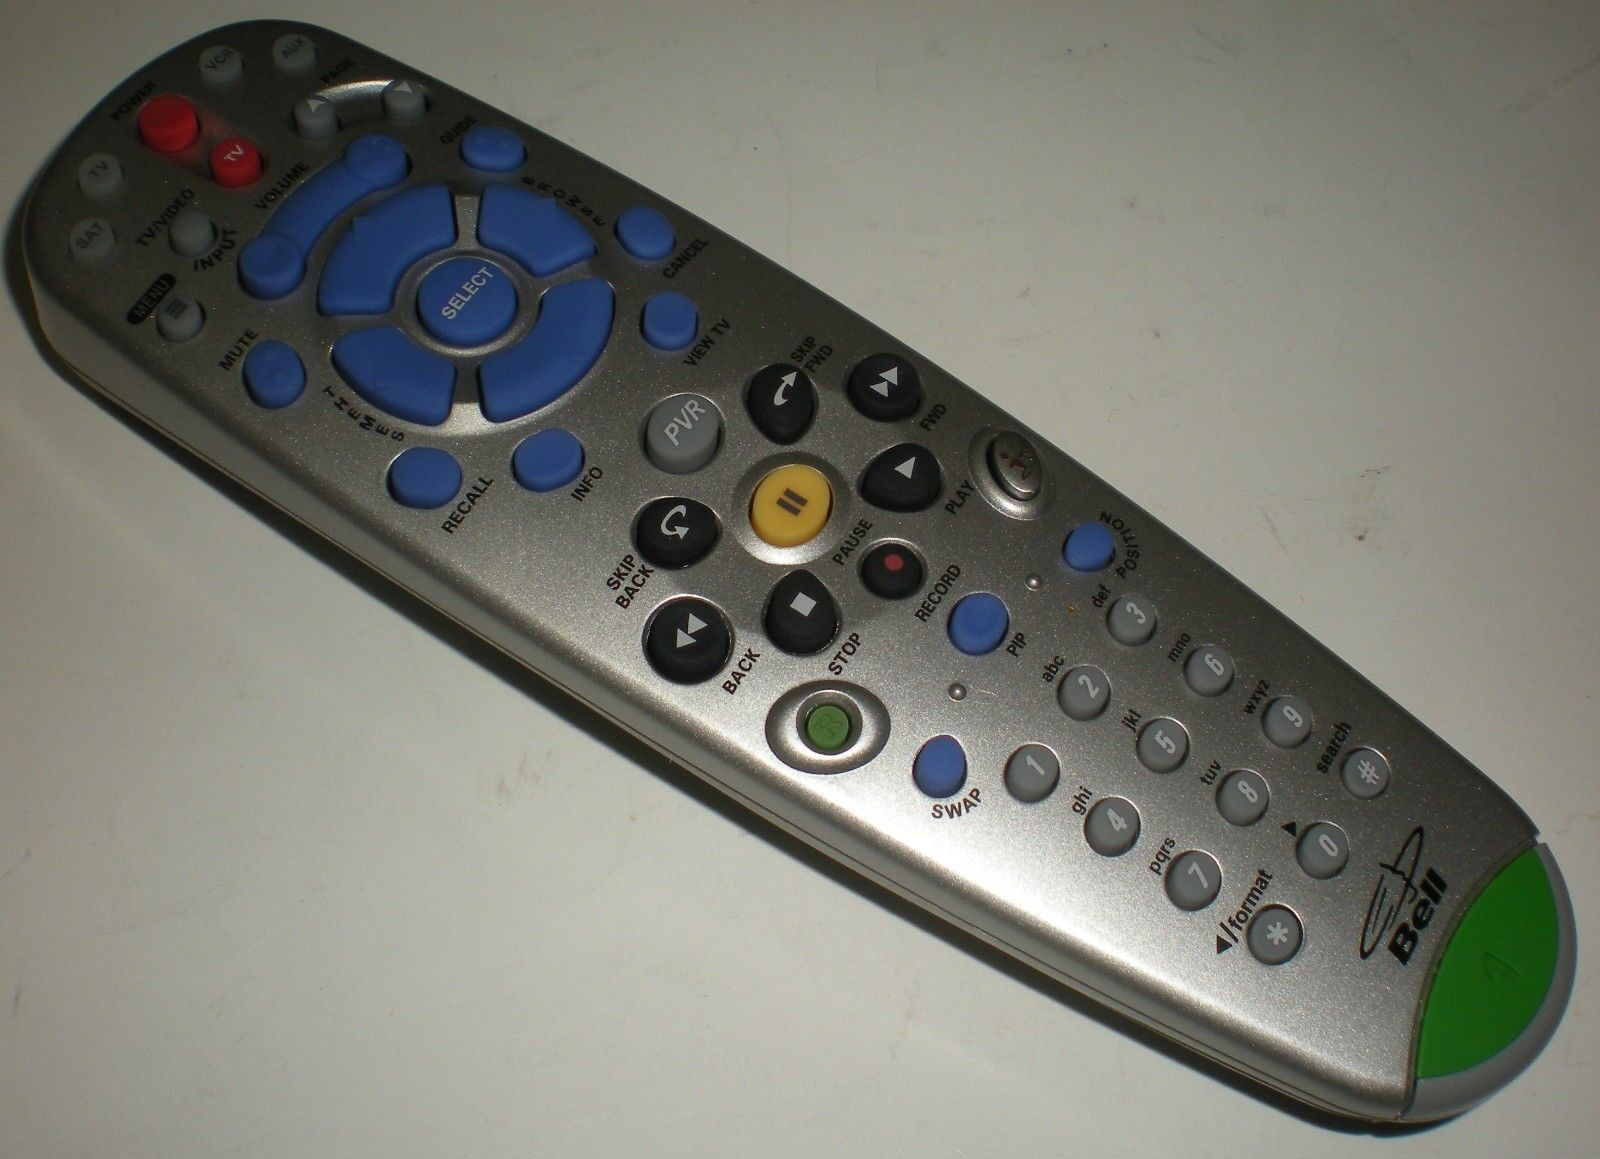 REMOTE BELL TV CONTROL INFRA-RED 137177 NEW IN PLASTIC